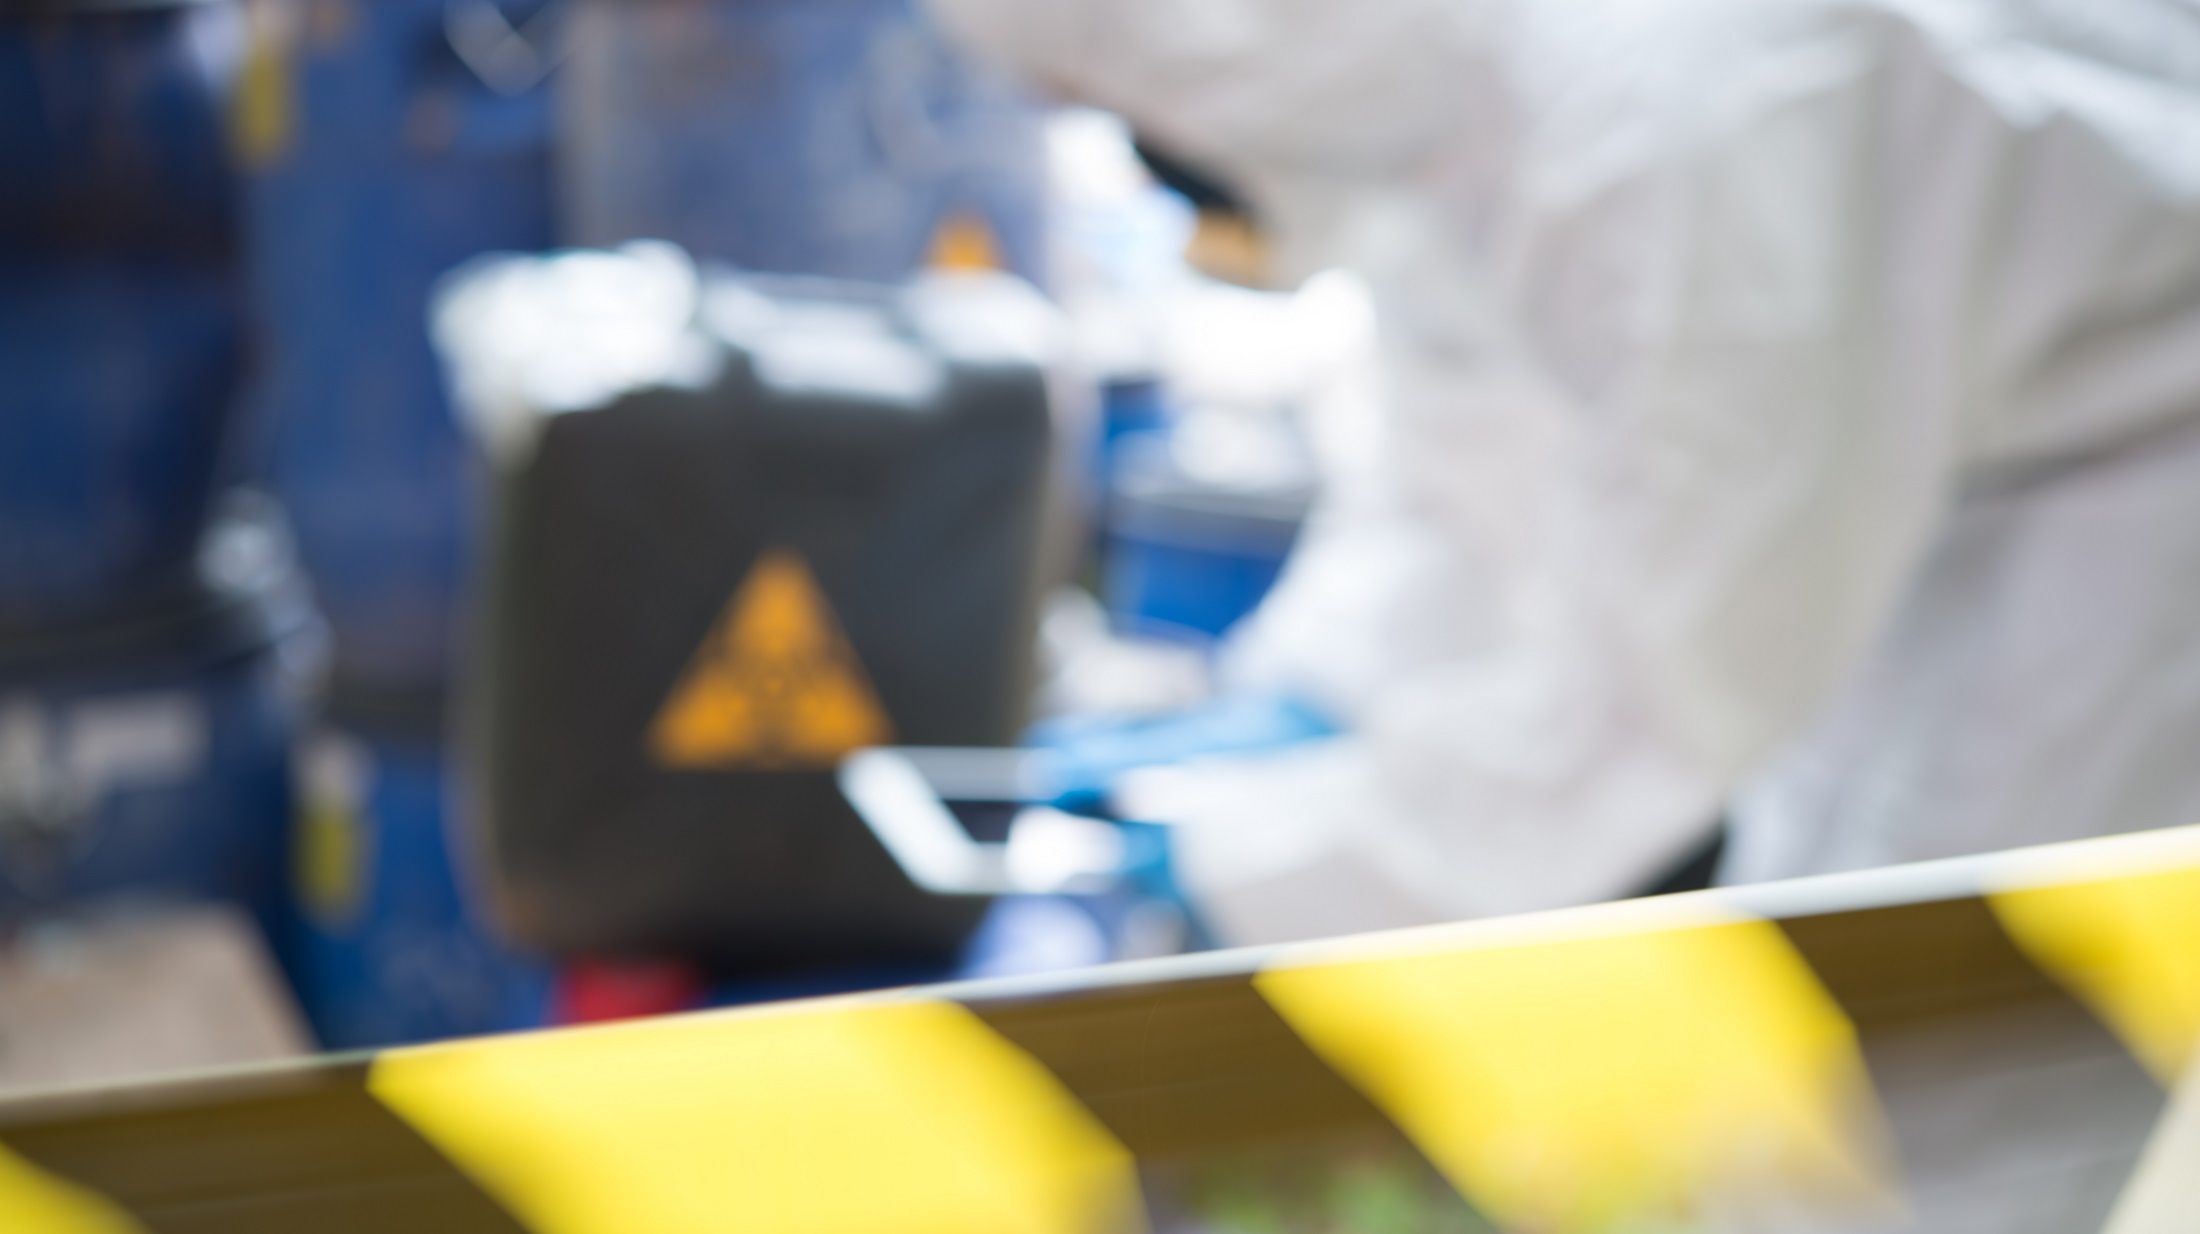 Working with suppliers and contractors to minimise chemical hazards